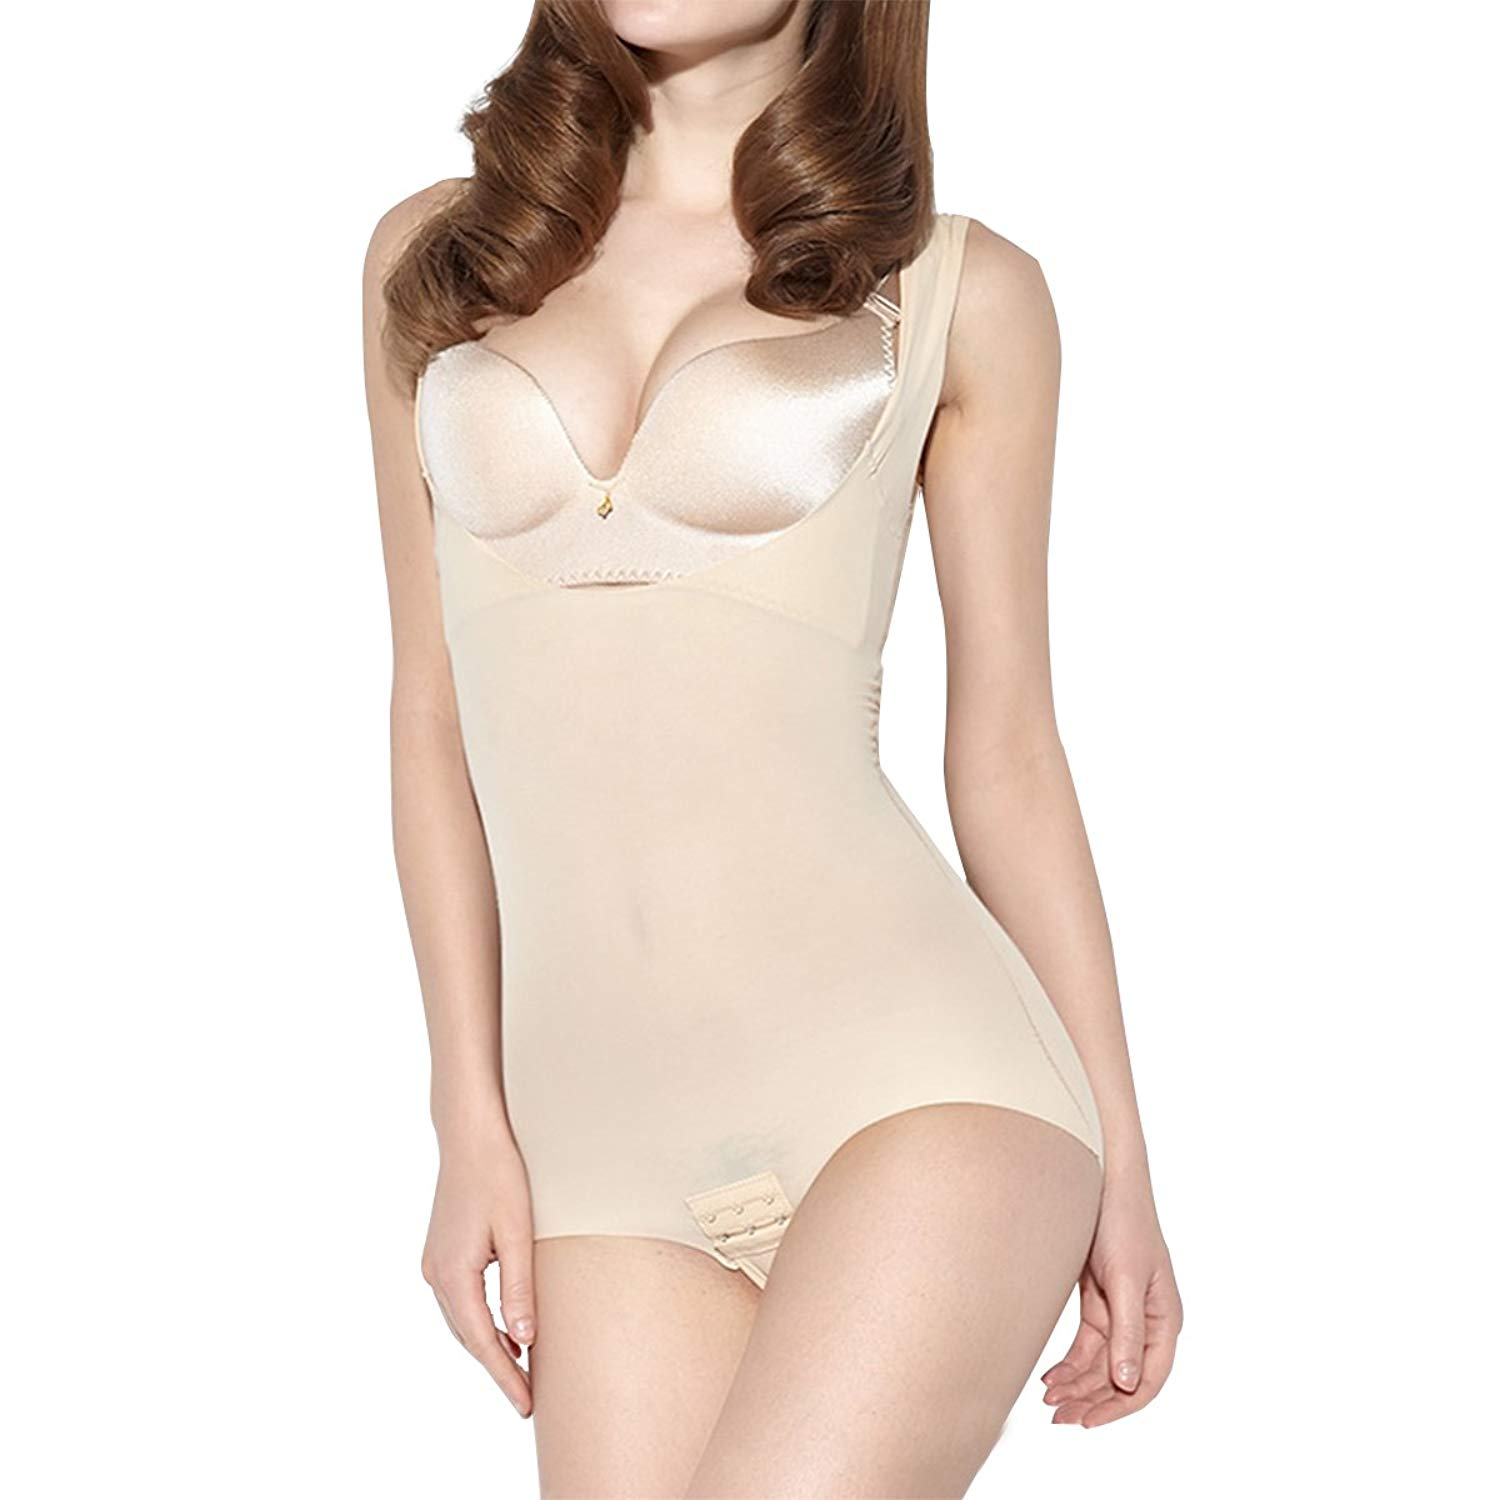 d3554ab02ff7a Shymay Women s Body Briefer Smooth Wear Your Own Bra Slimmer Shapewear  Bodysuits